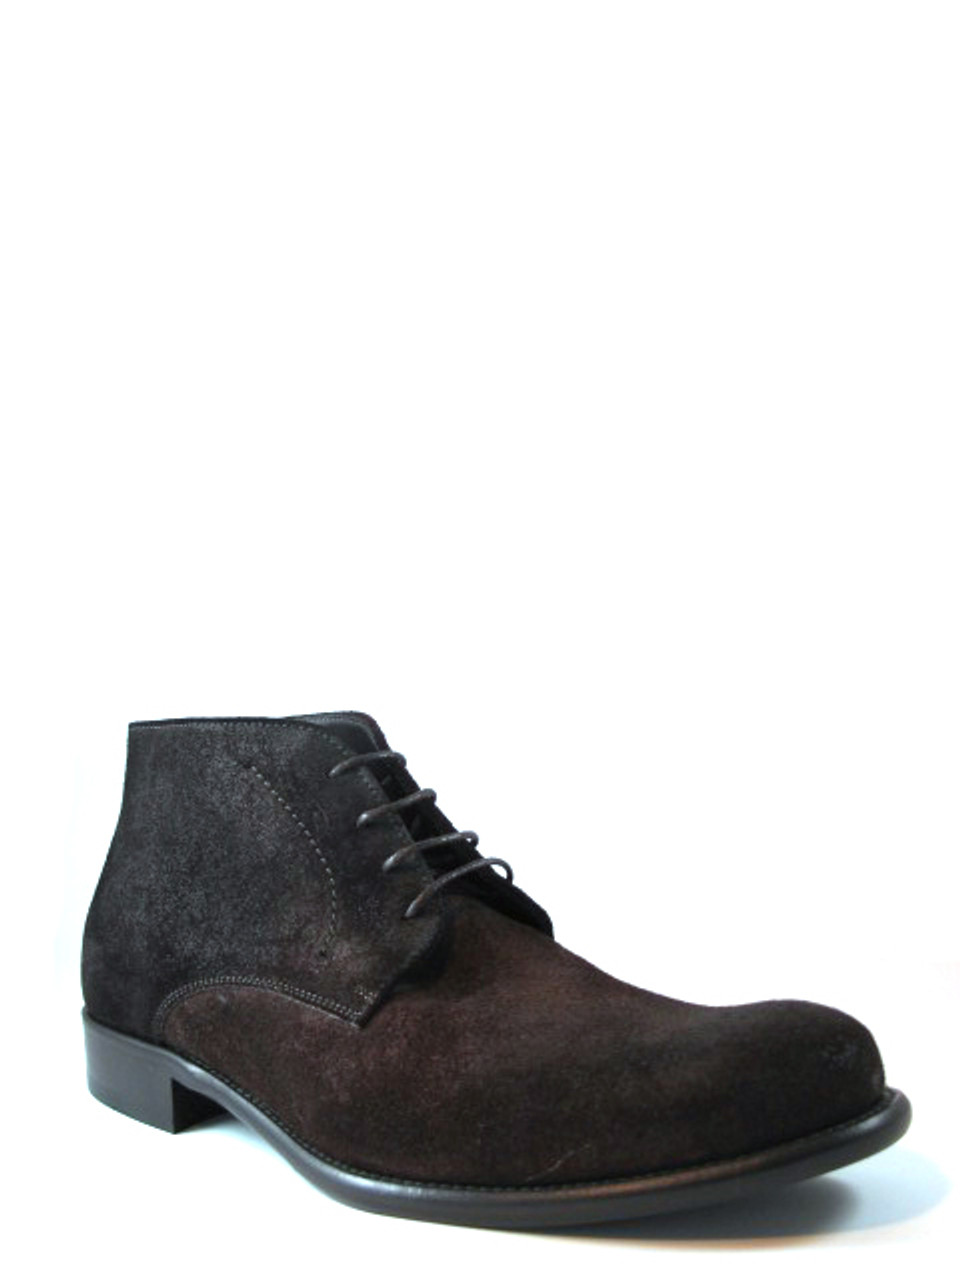 Men's Davinci Italian Lace Up Ankle Boot Brown Brushed Suede 1020